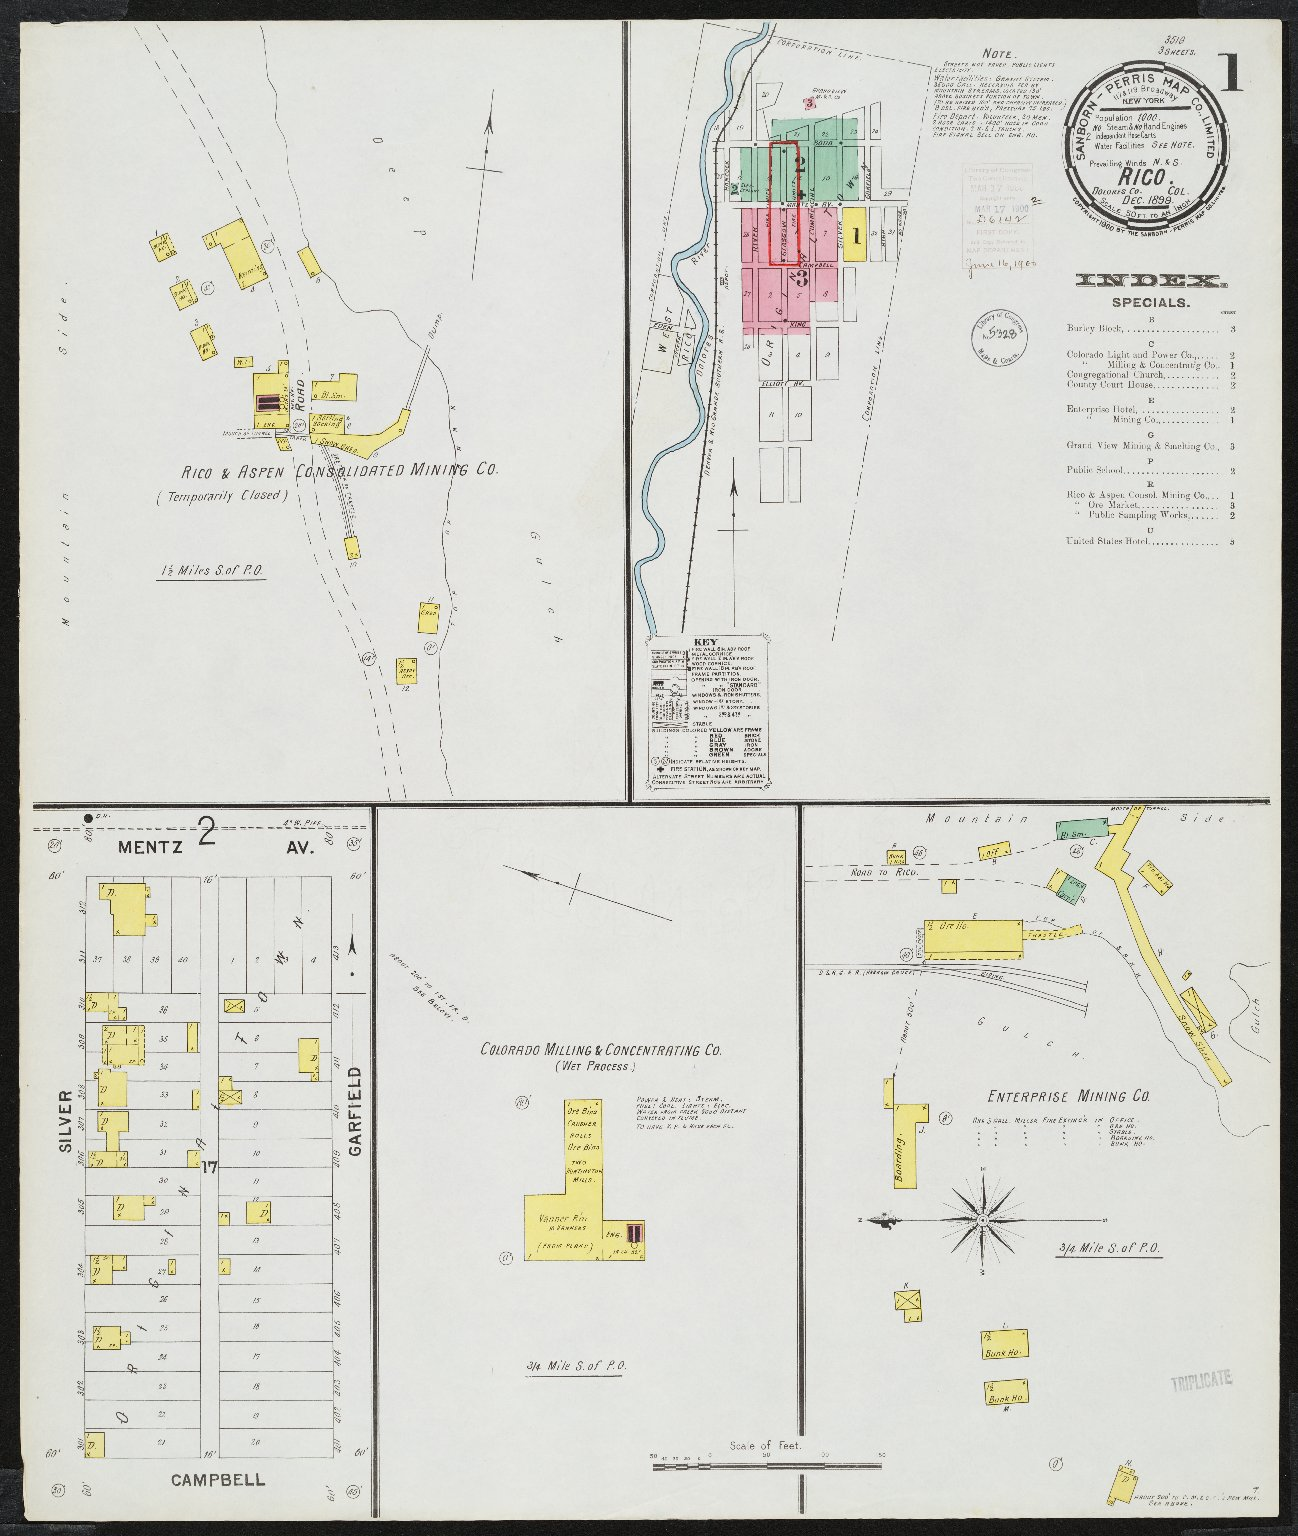 Rico Dolores Co Col Sanborn Fire Insurance Map Collection